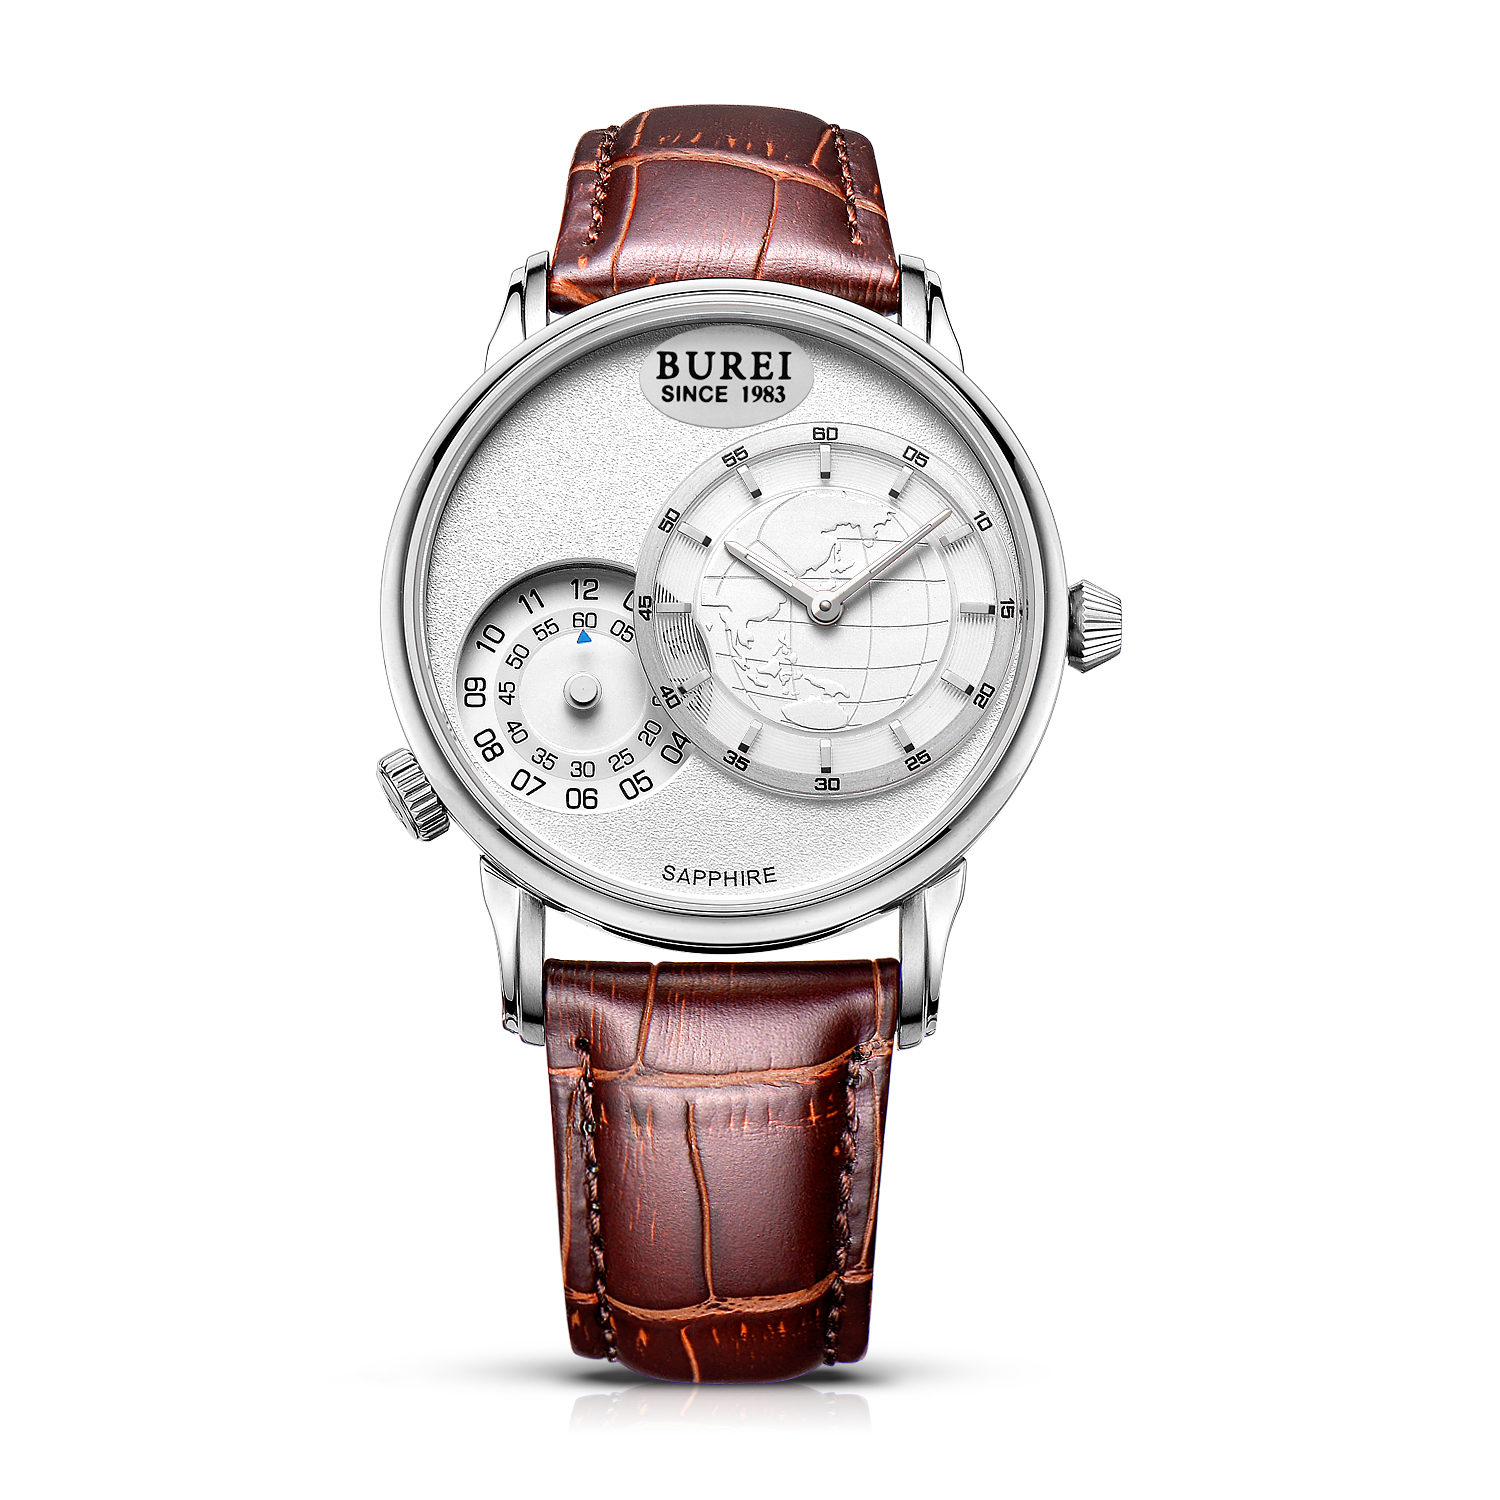 BUREI 5009 Switzerland watches men luxury brand Mens Dual Time Travel Business Casual Watches White Dial Brown Leather Strap